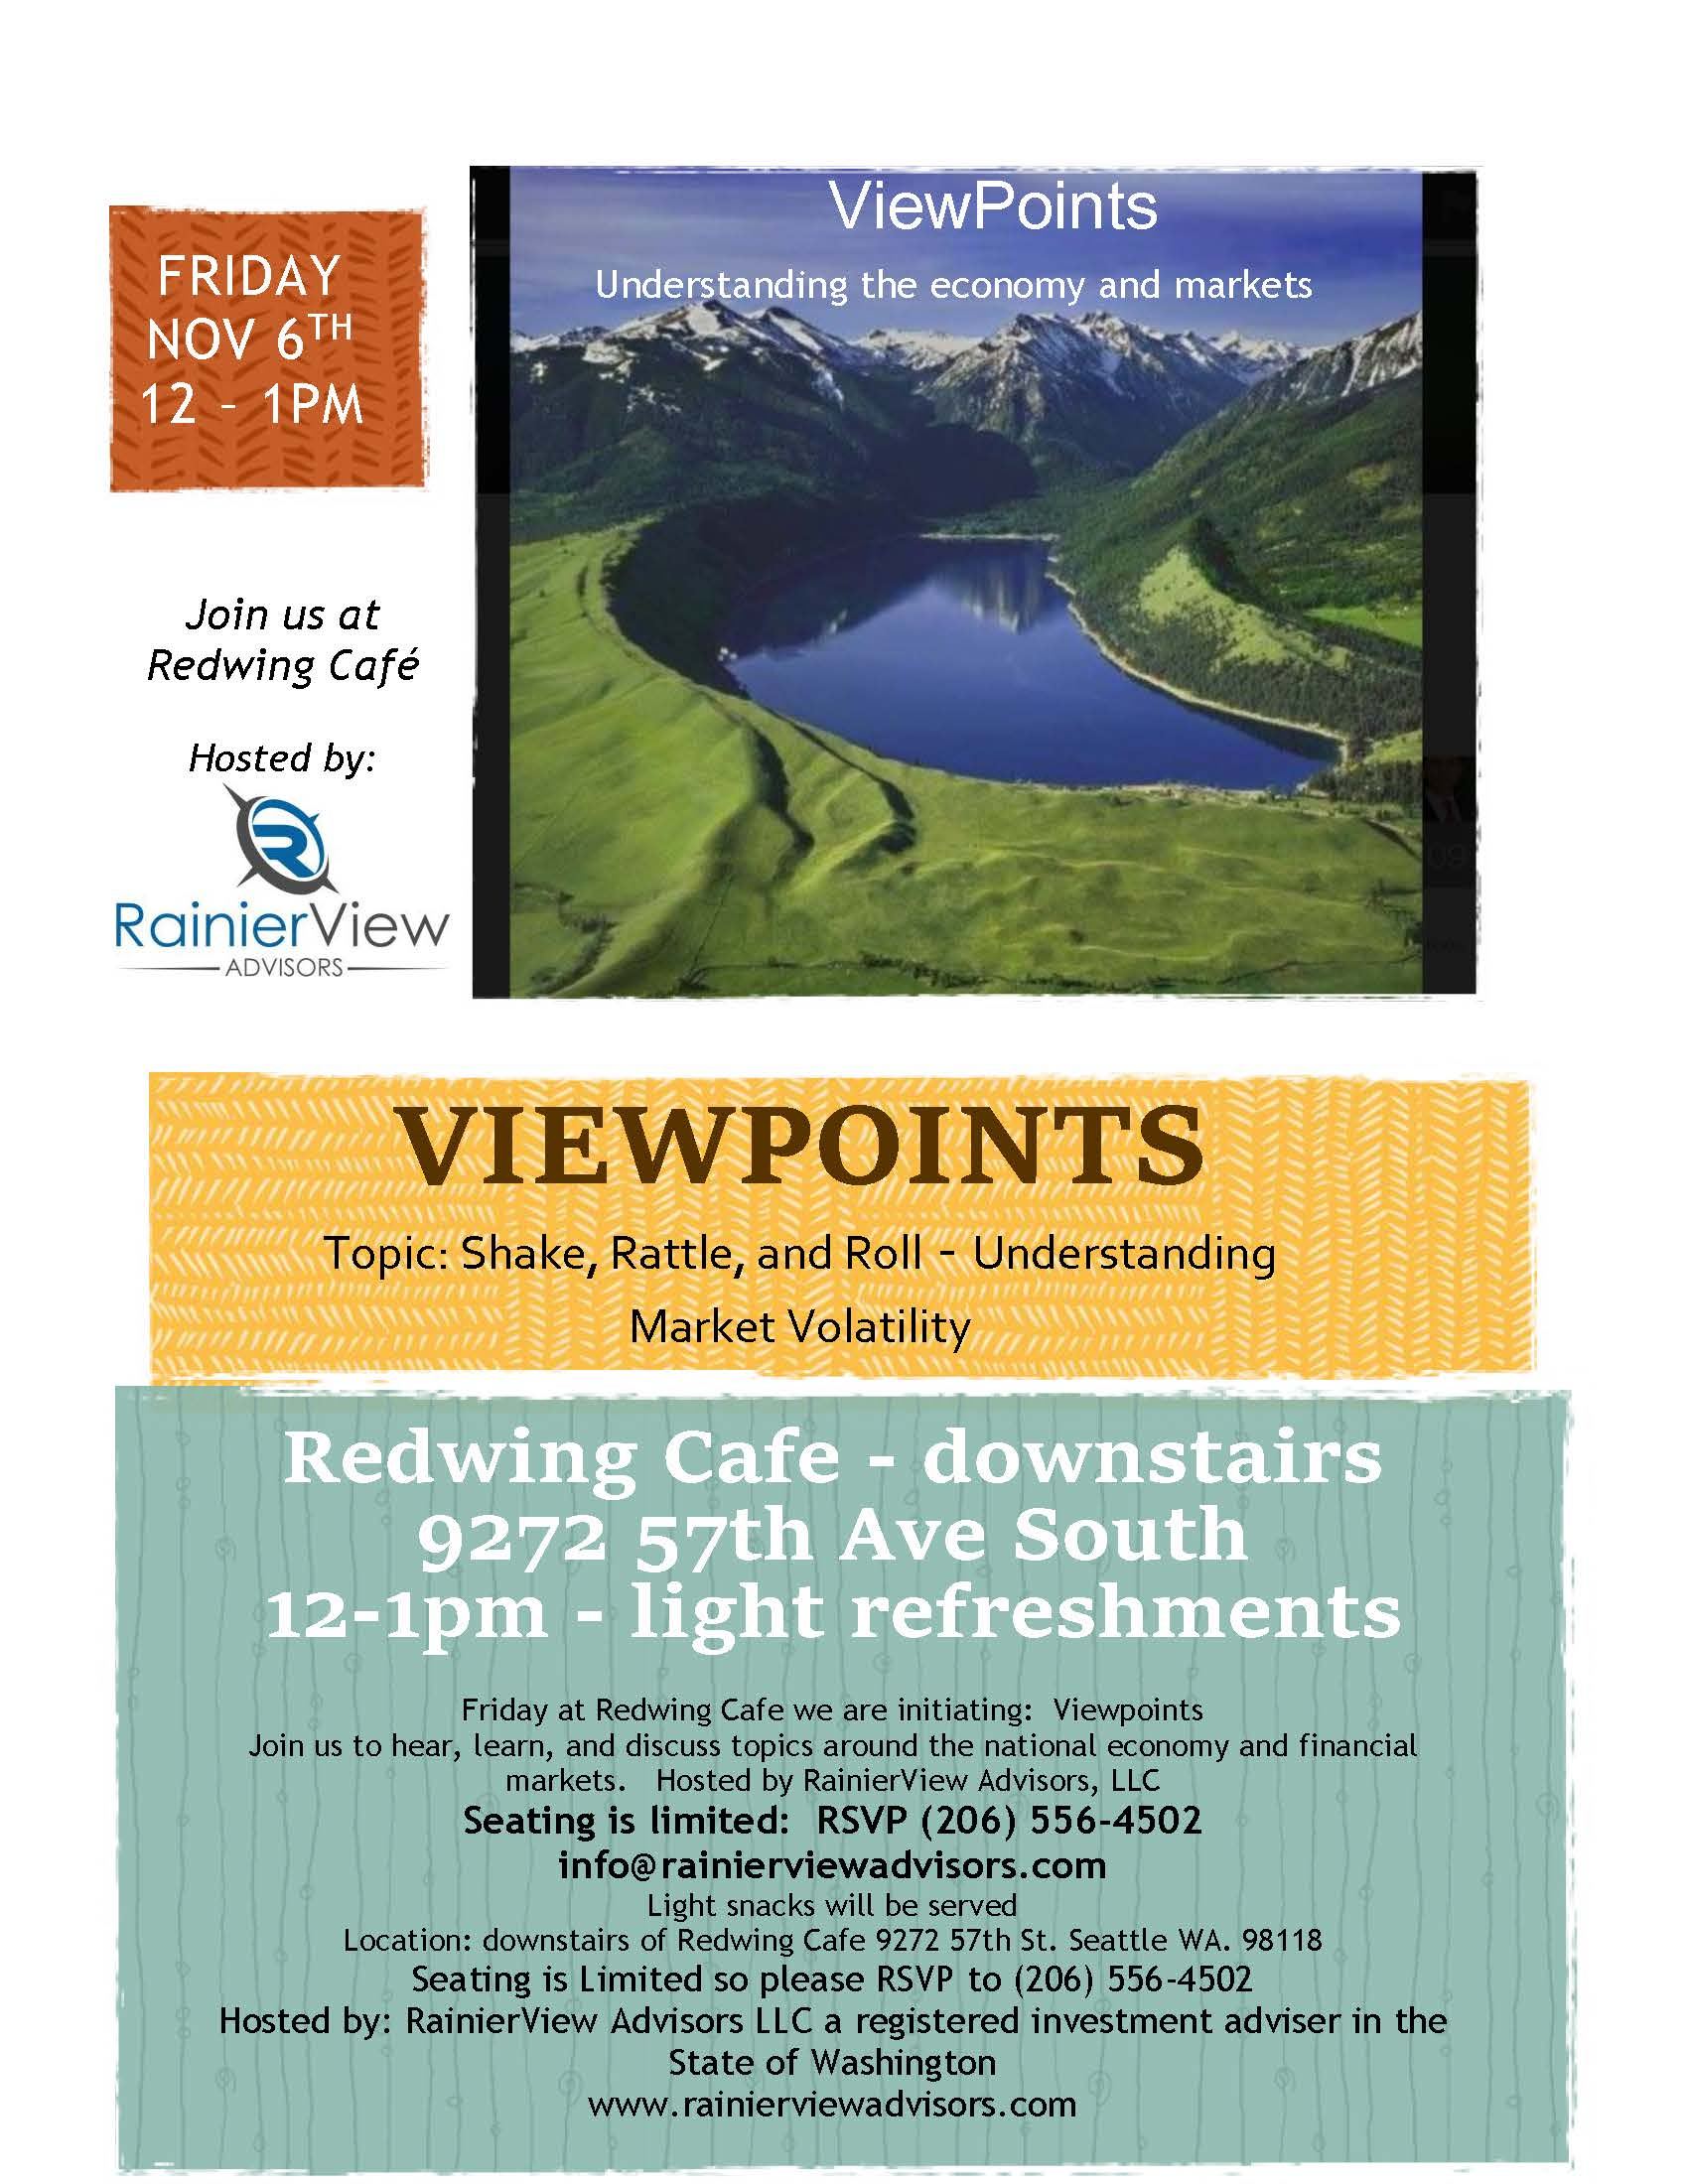 Viewpoints Nov 6th Flyer